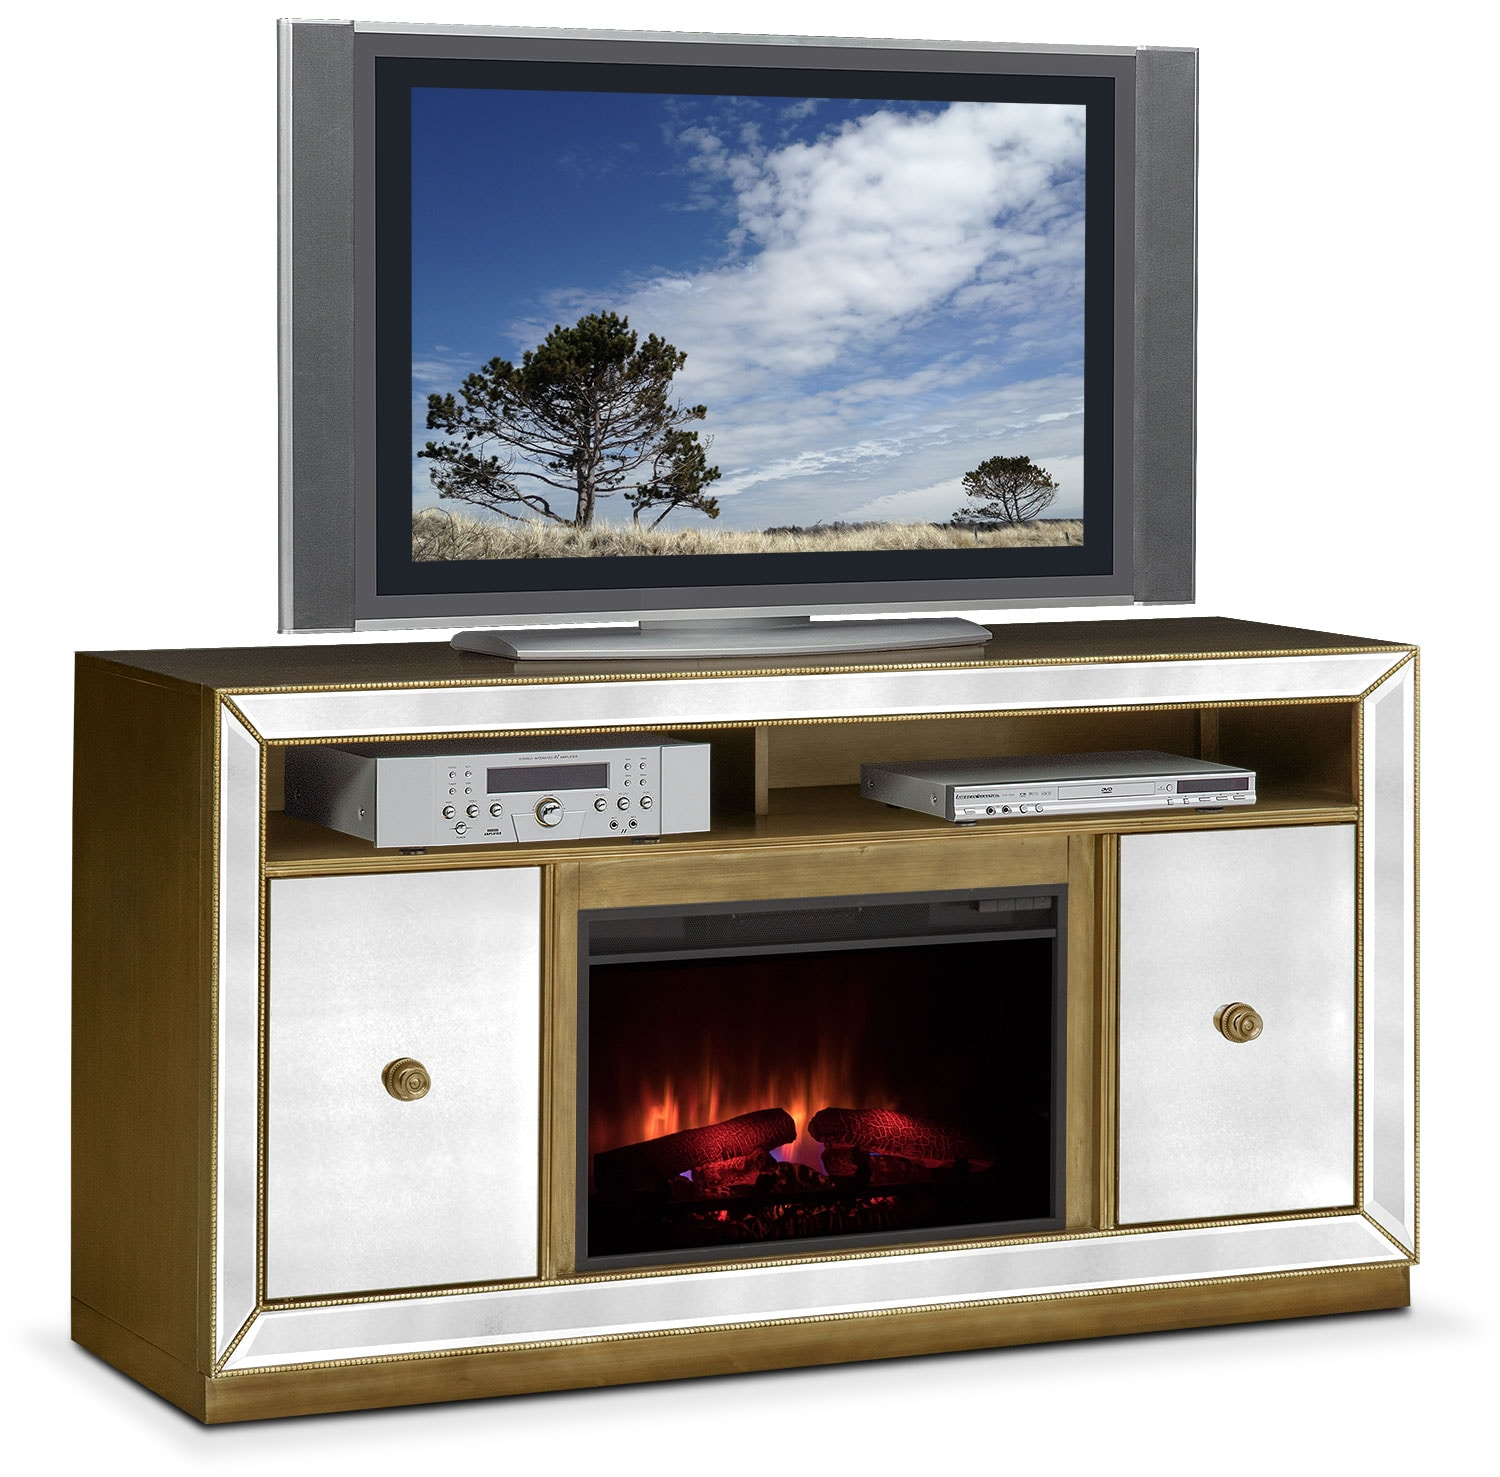 Furniture Com: Reflection Traditional Fireplace TV Stand - Mirror